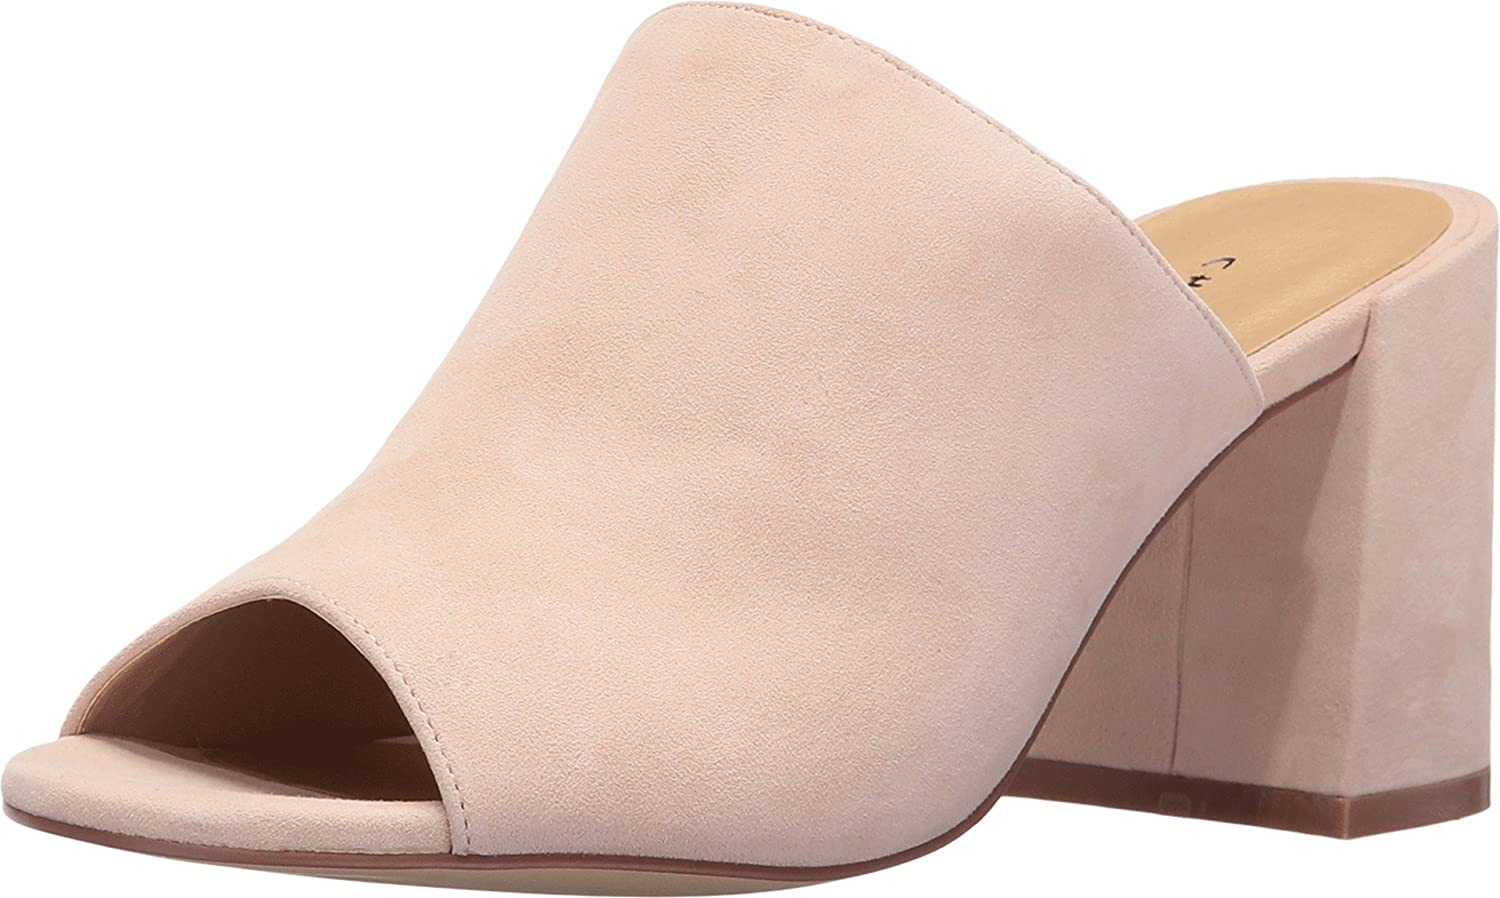 Chinese Laundry Women's Sammy Kid Suede Mule